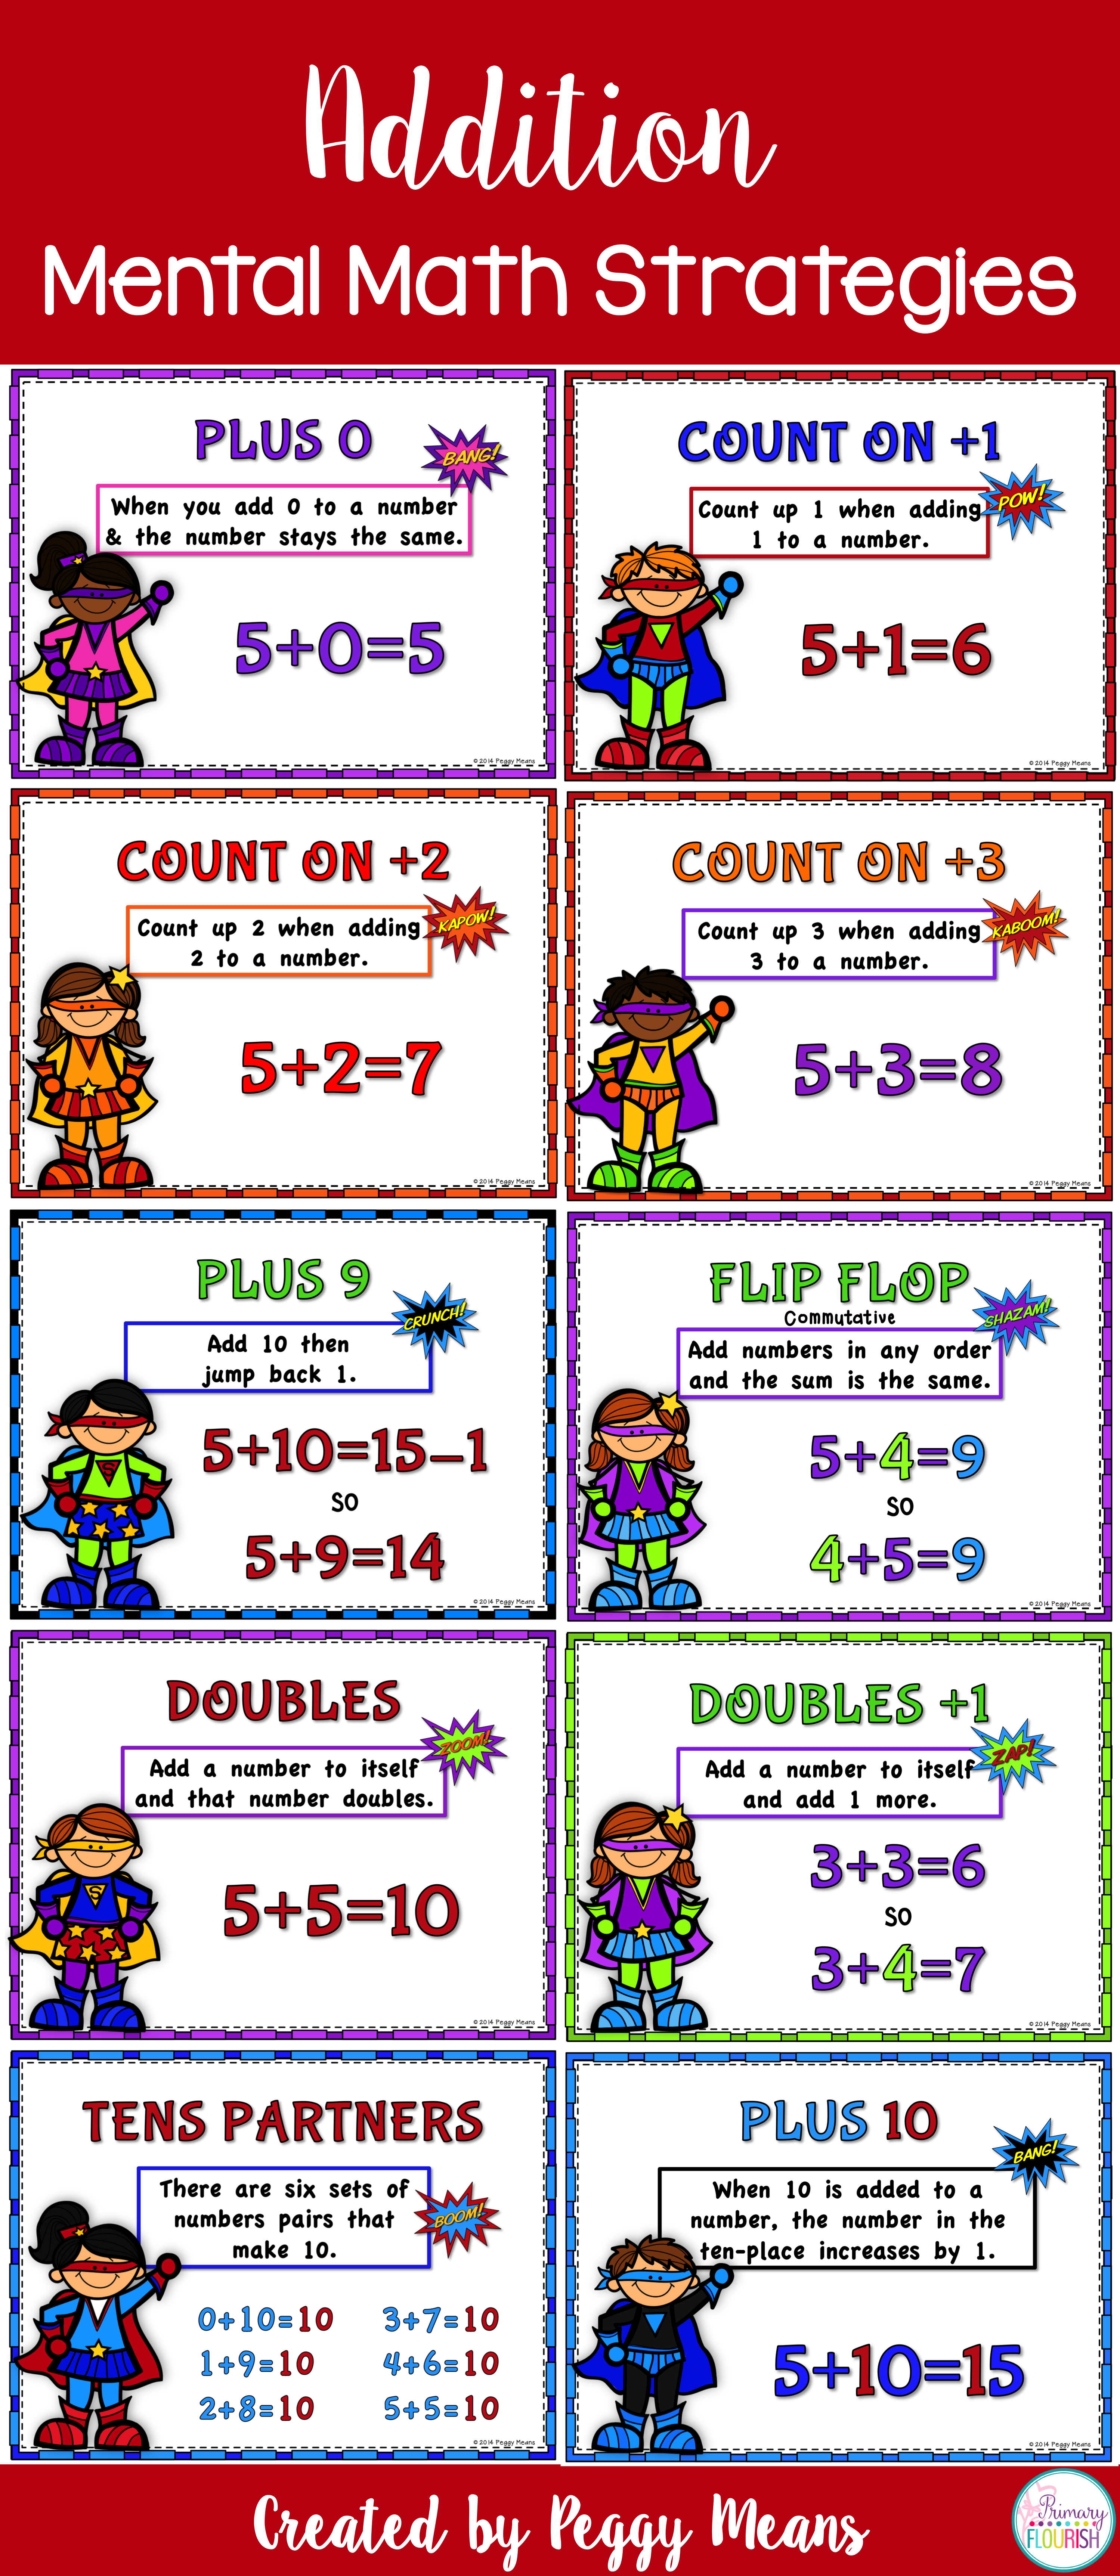 Addition Mental Math Strategy Posters - Super Hero Theme | Pinterest ...